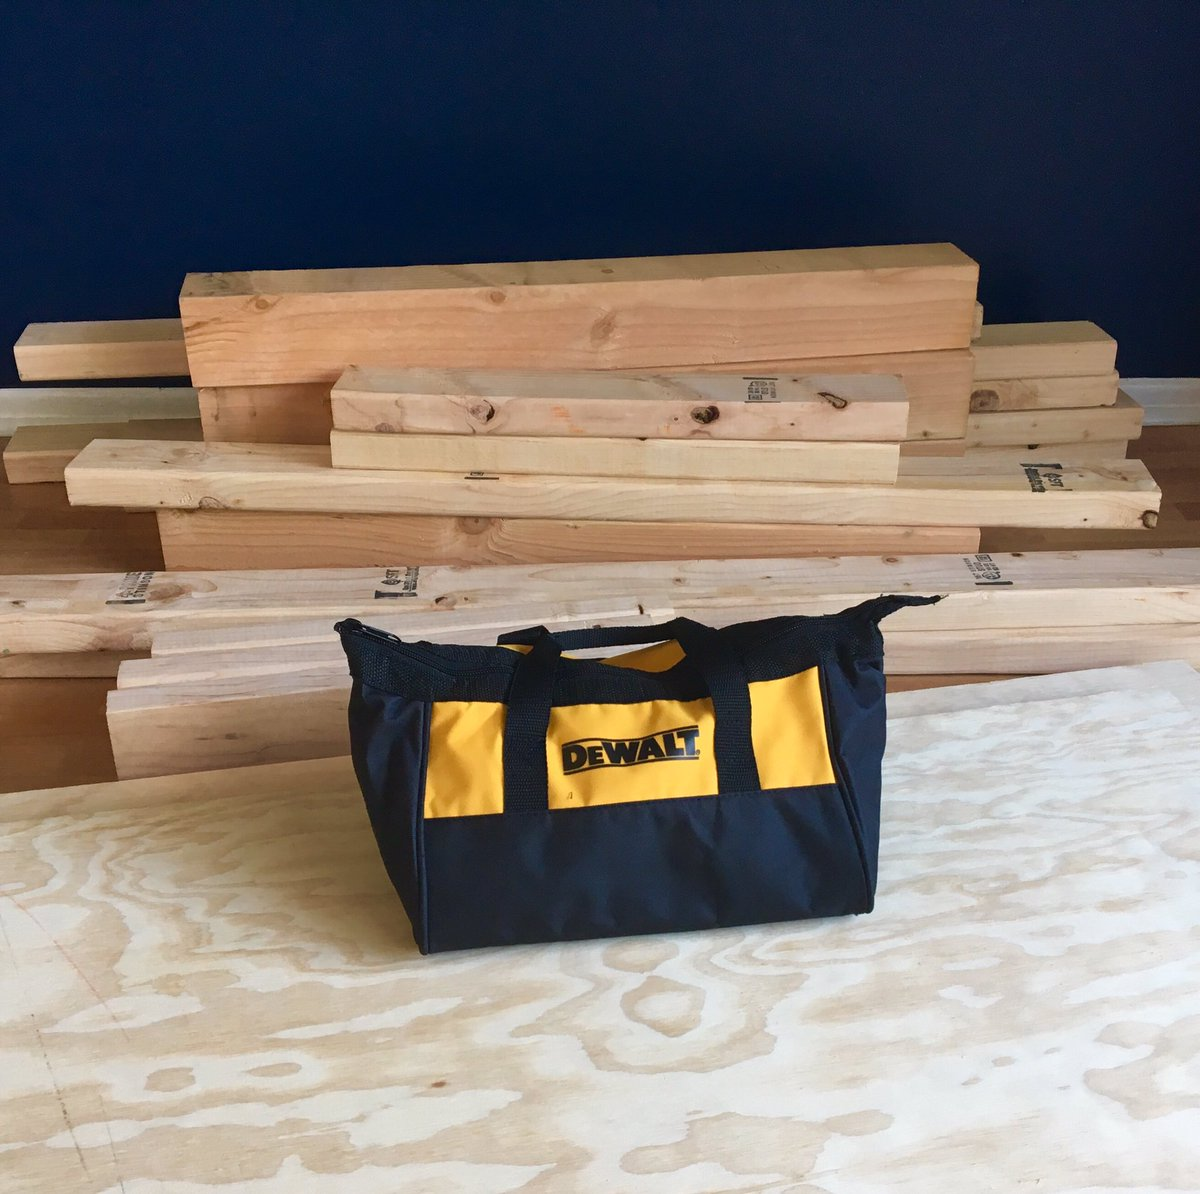 When your living room becomes your workshop. That&#39;s about to change! #diy #woodworking #dewalt #tools #wood #furniture @DEWALTtough<br>http://pic.twitter.com/W0pXcUGXqf